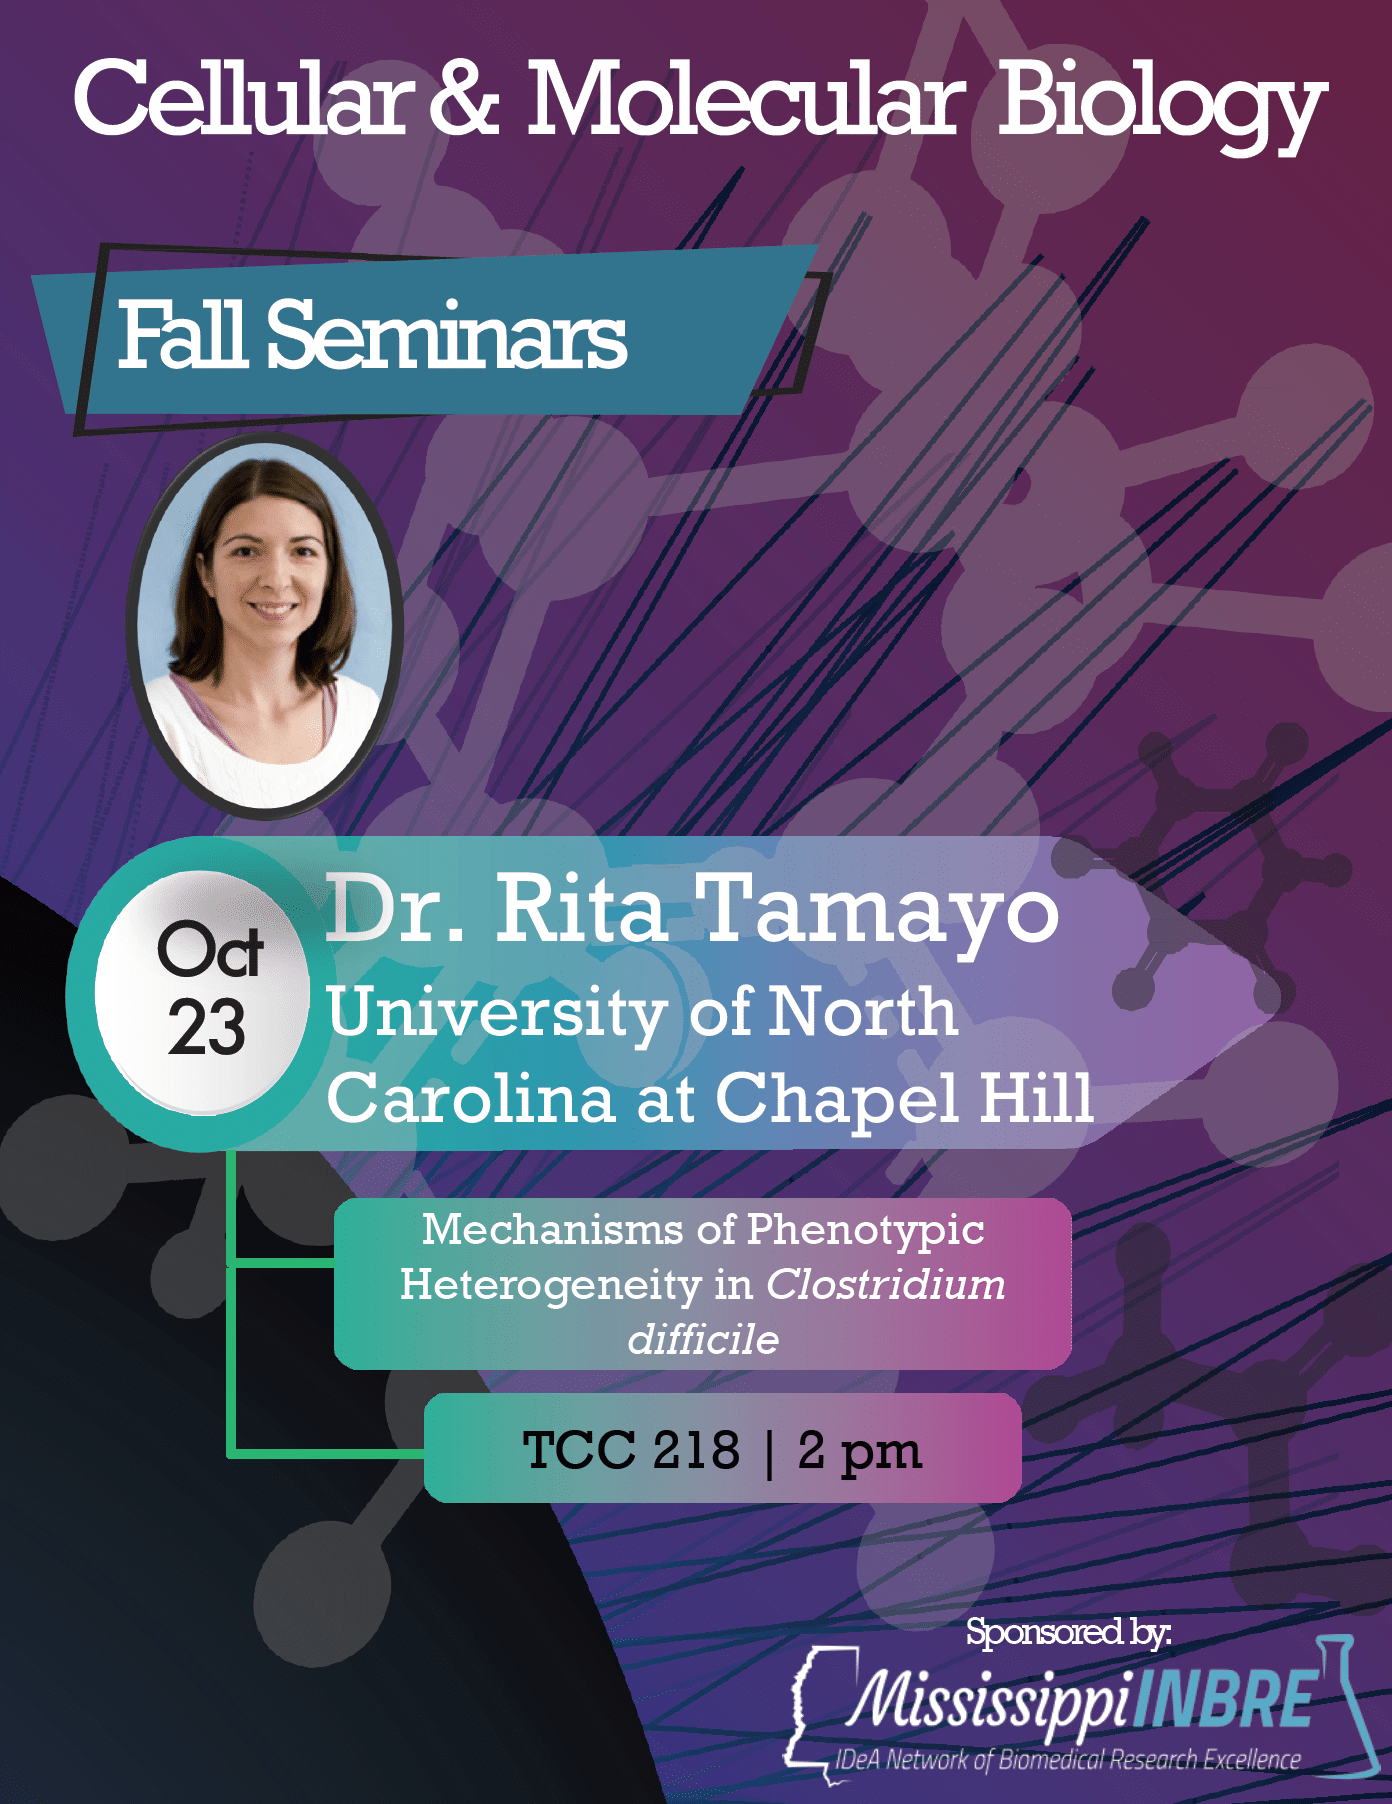 Dr. Rita Tamayo visits USM for CMB Seminar Series